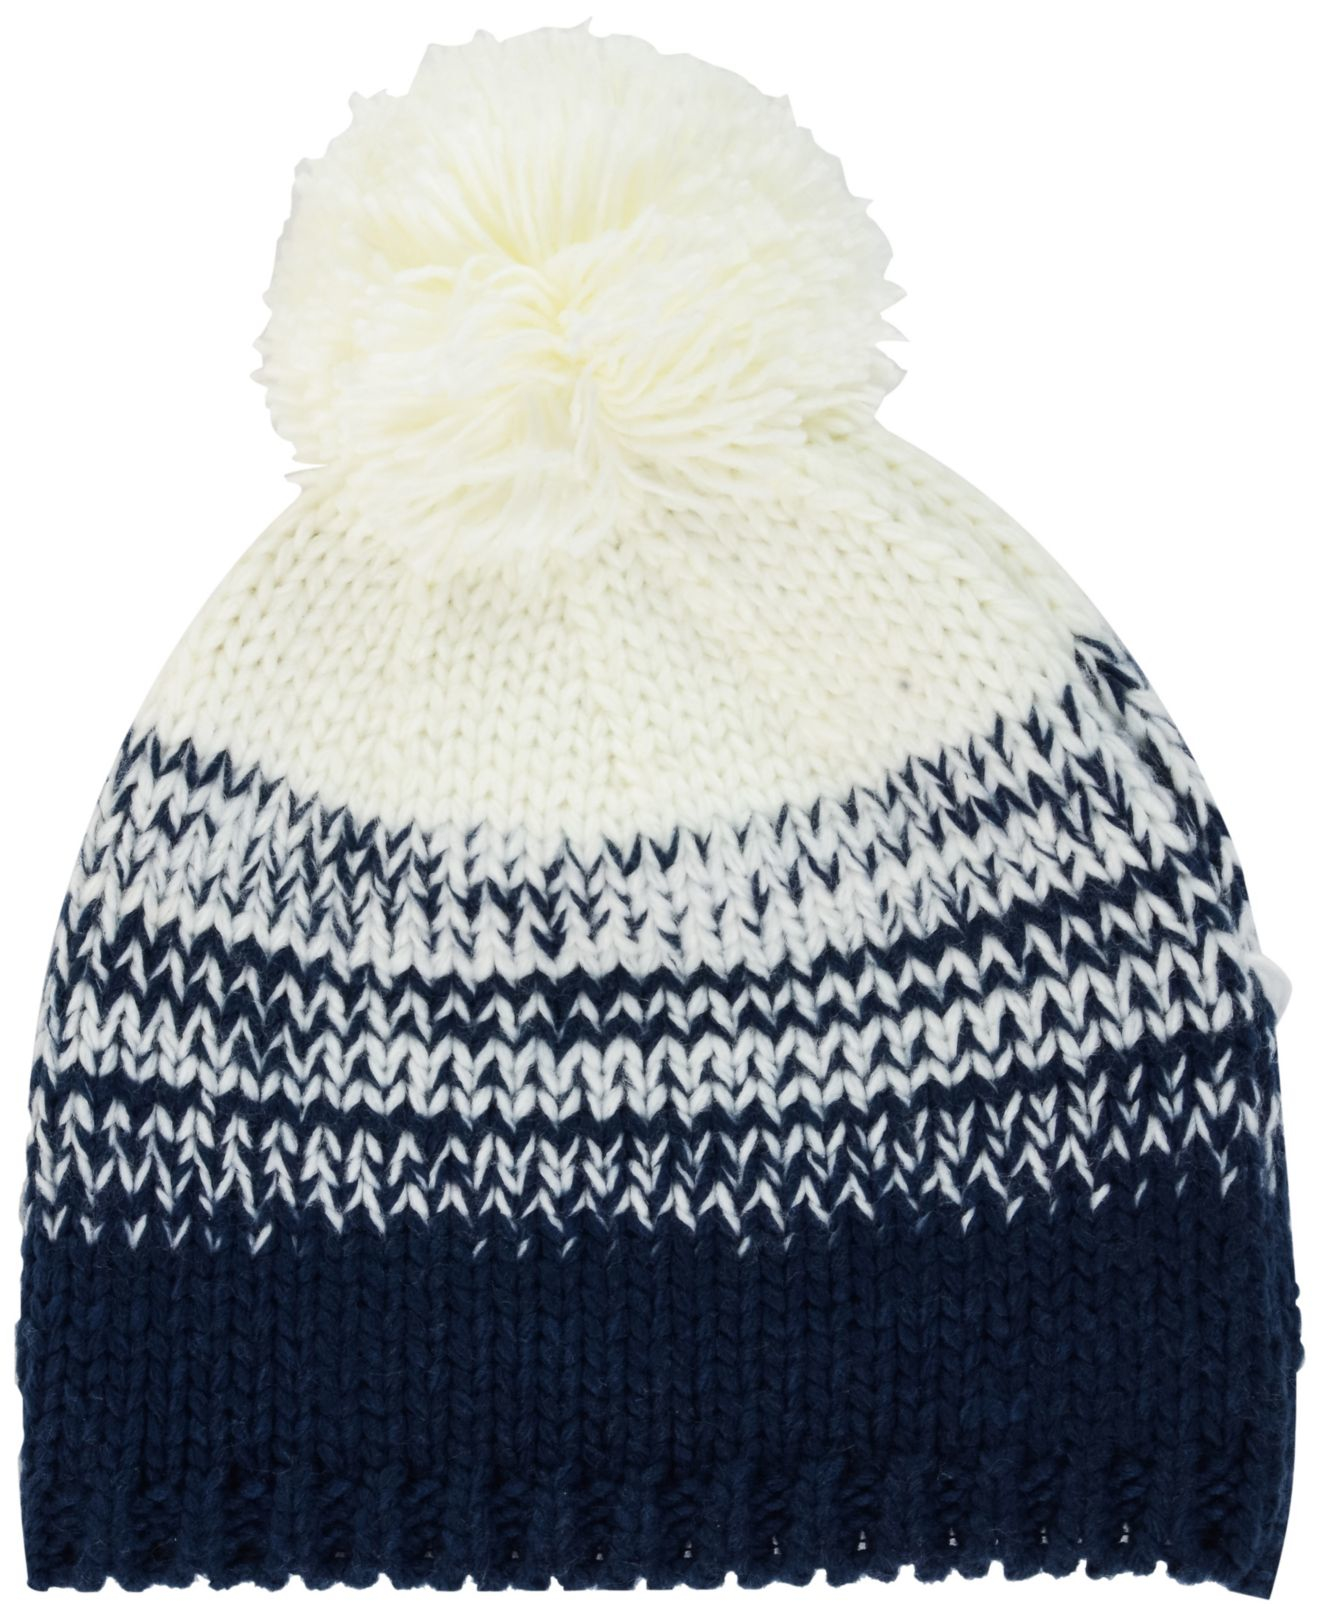 68a0e239099 ... amazon lyst ktz womens new england patriots polar dust knit hat in  white 8ce5a 38e35